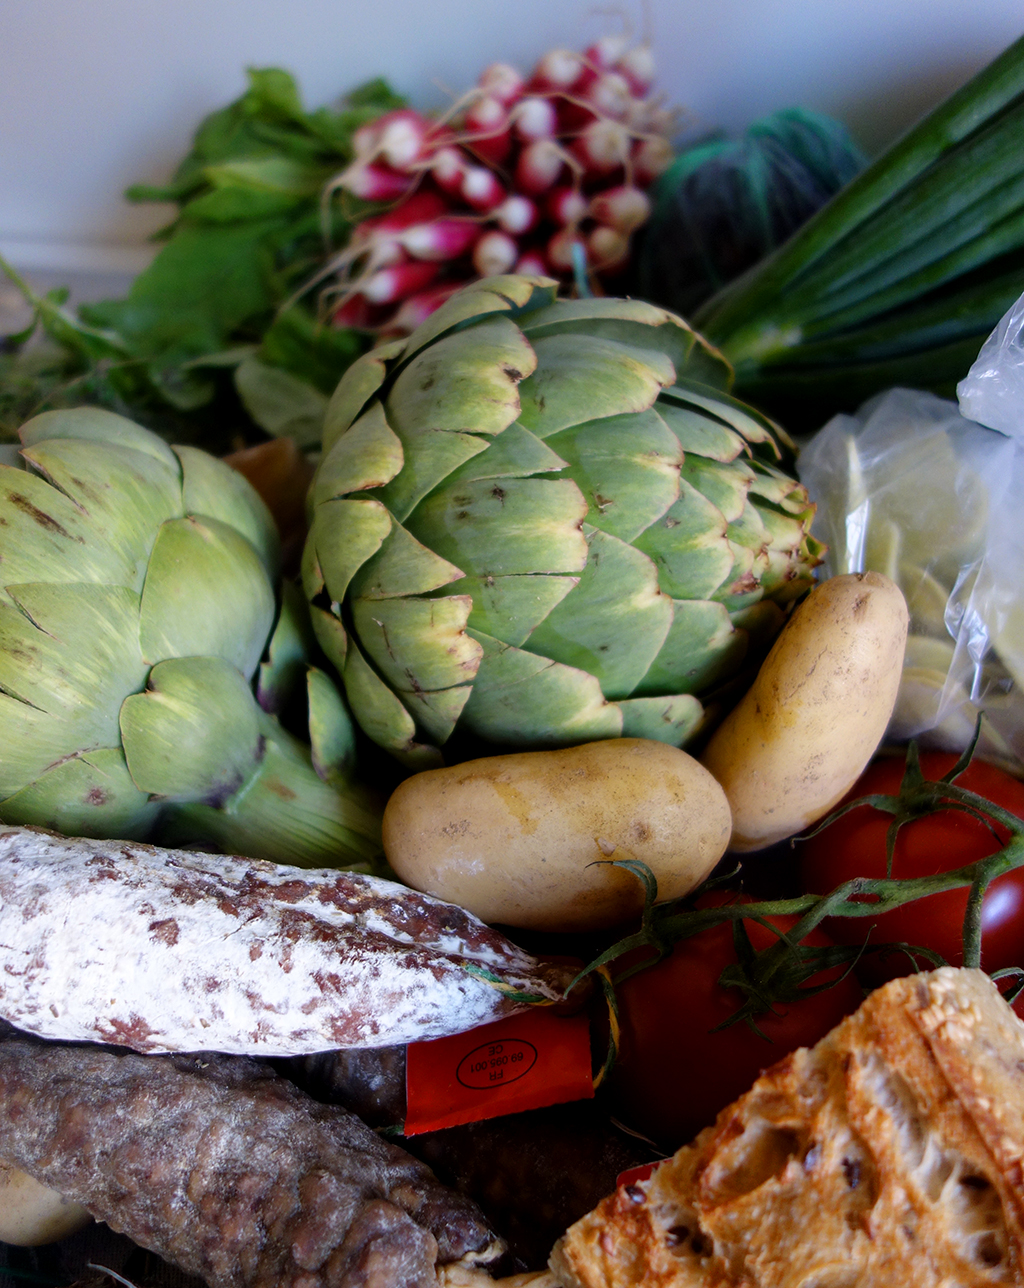 Artichokes, sausages and cheese from Annecy